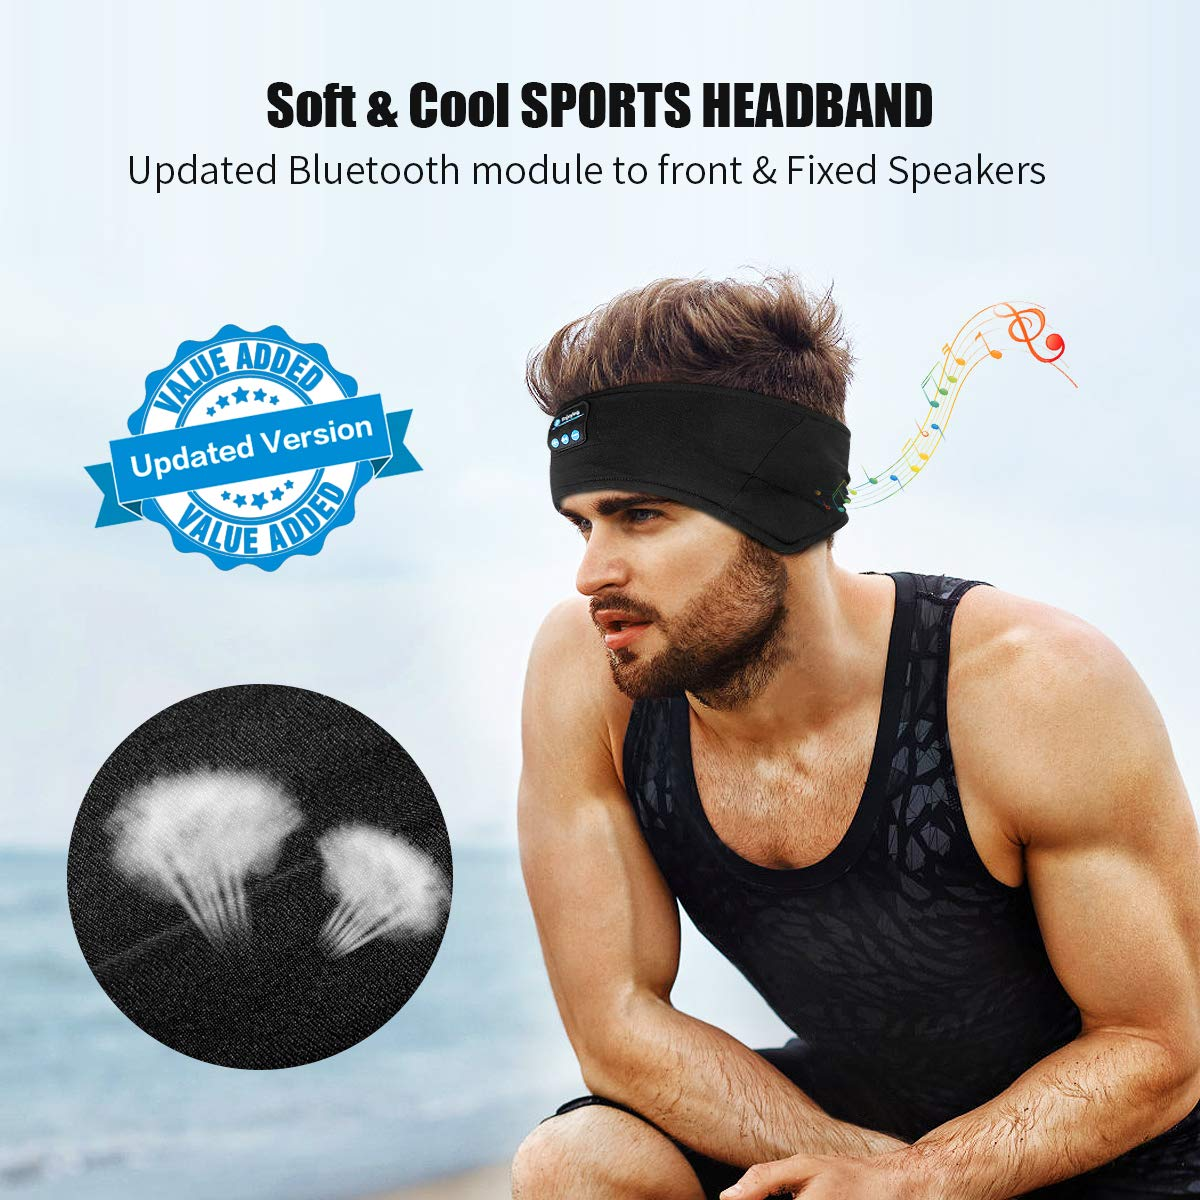 Bluetooth Headbands Music Sports Sweatband,WU-MINGLU Wireless Sleeping Headphones,Headband Headset for Men,Women with Thin Cooling Fabric Adjustable Earphones for Running, Yoga Black